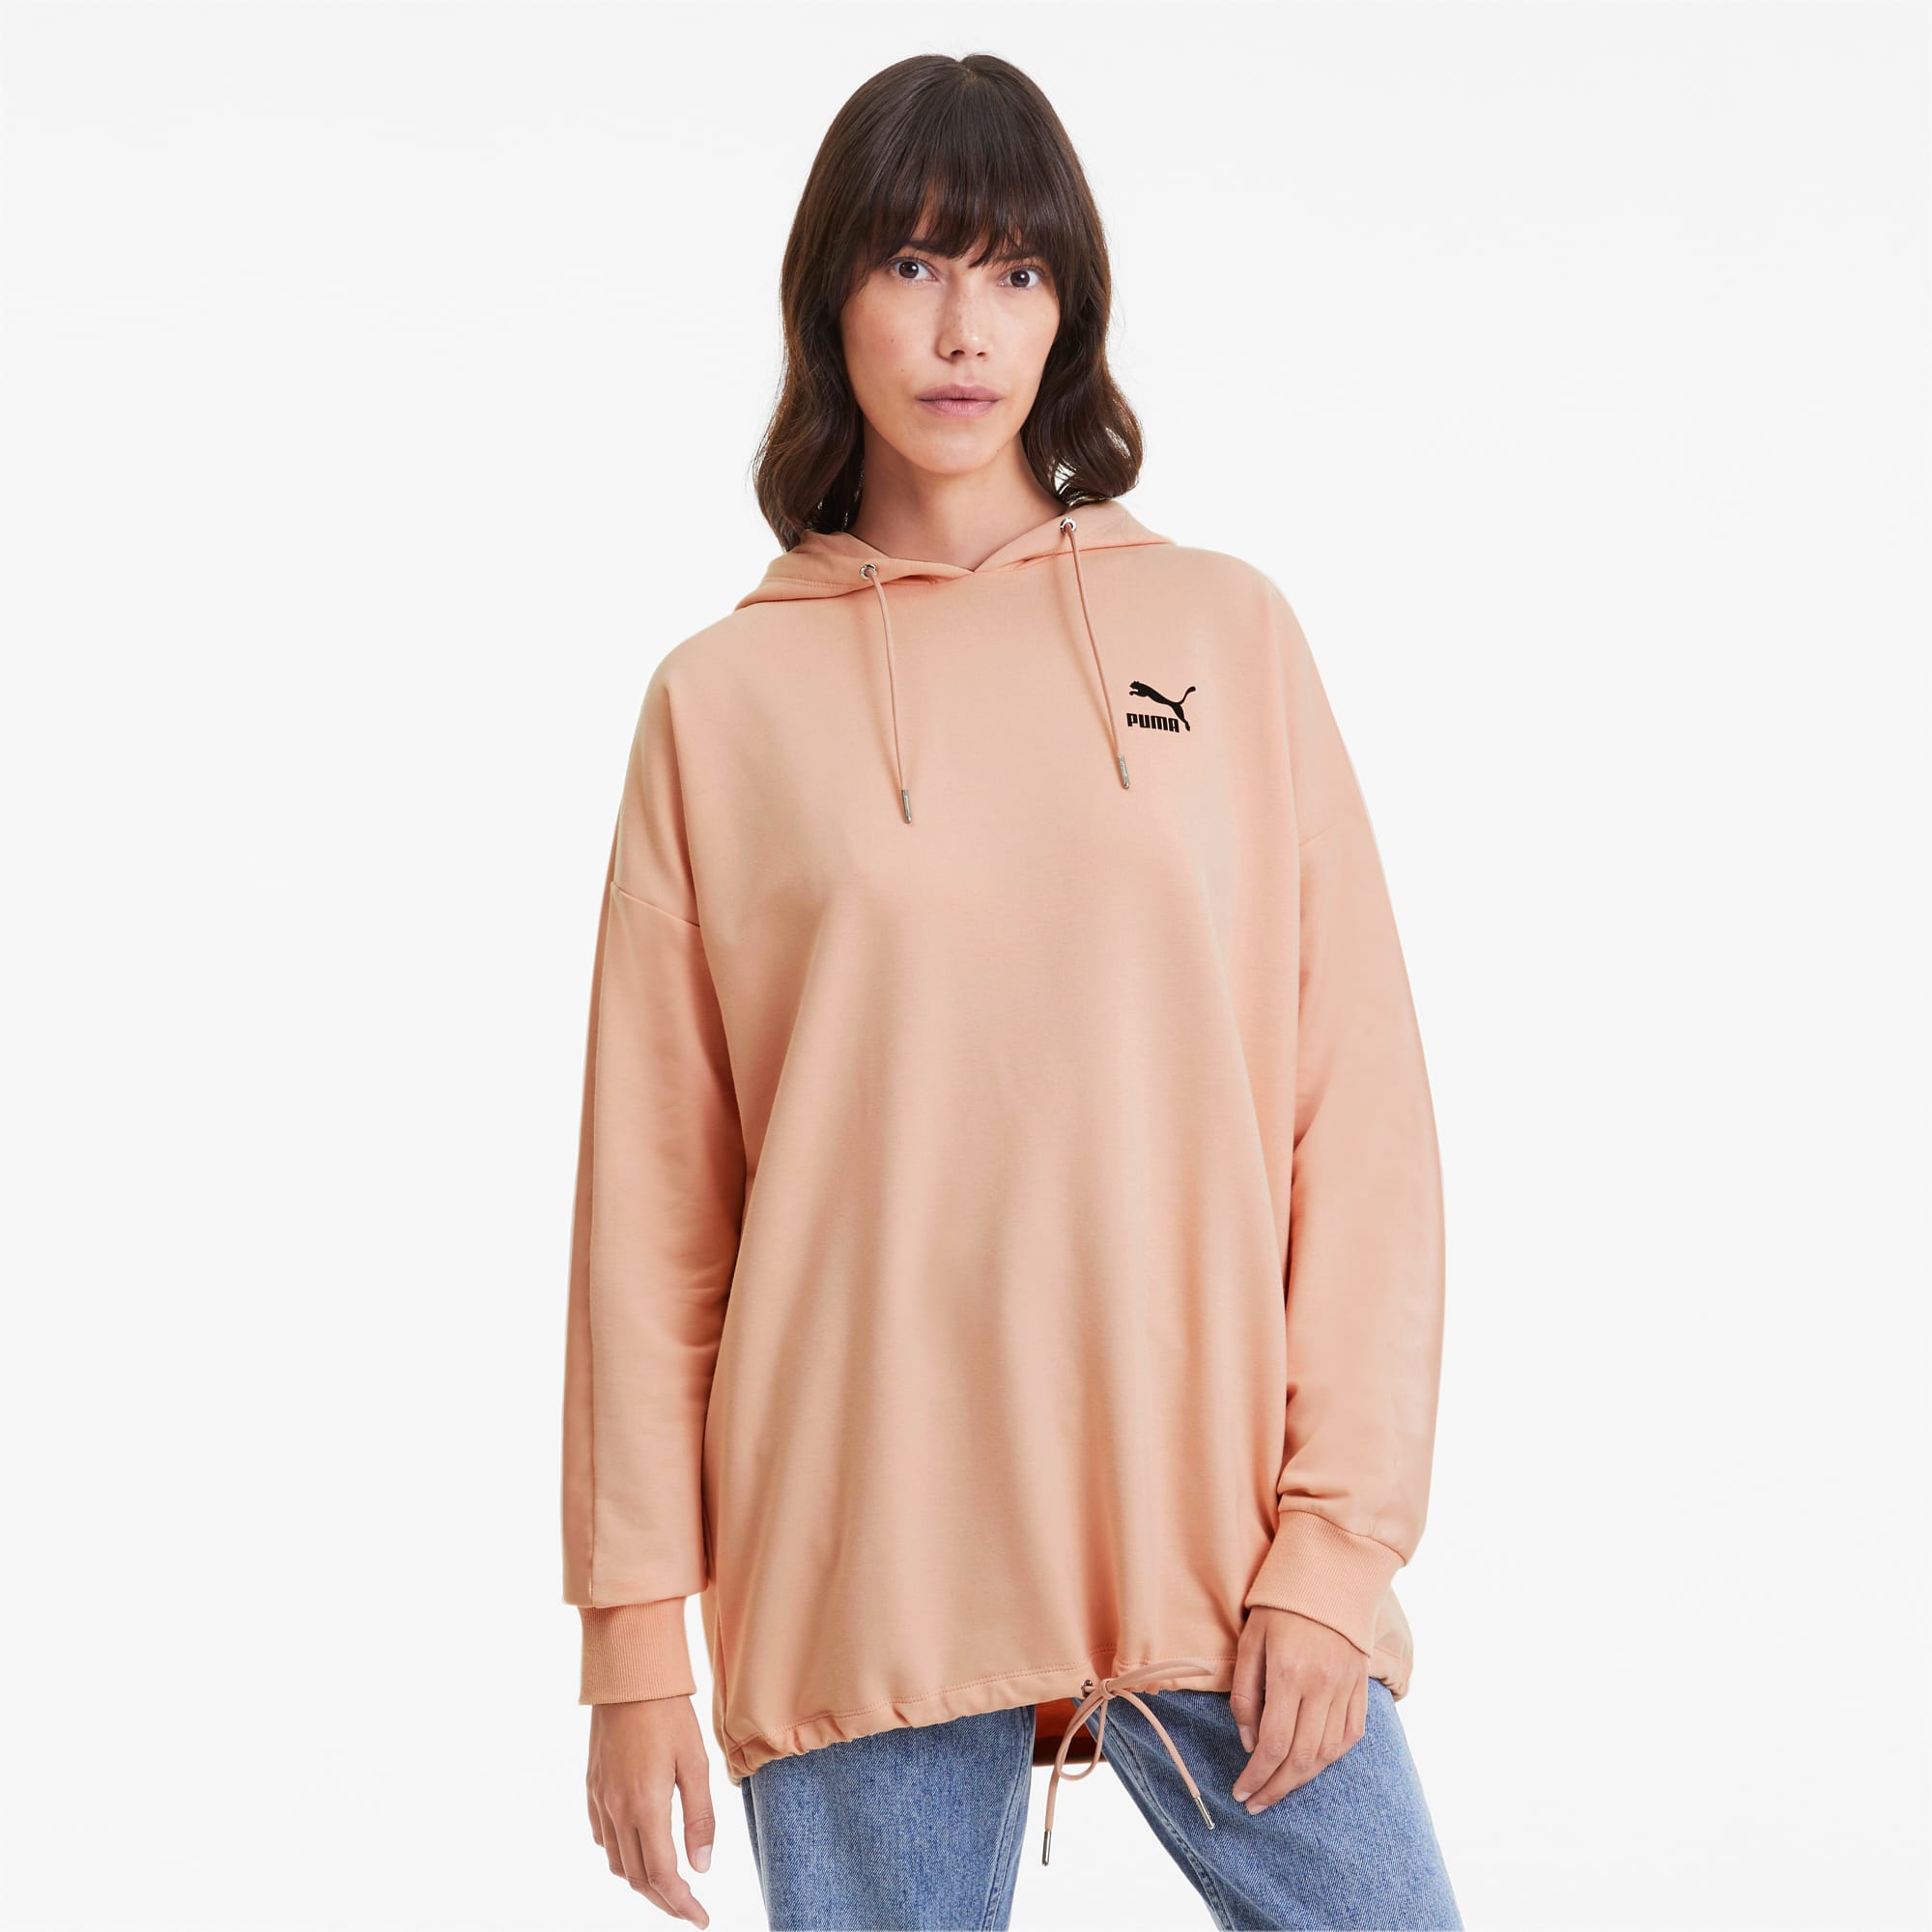 Tailored for Sport Women's Fashion Hoodie | PUMA US